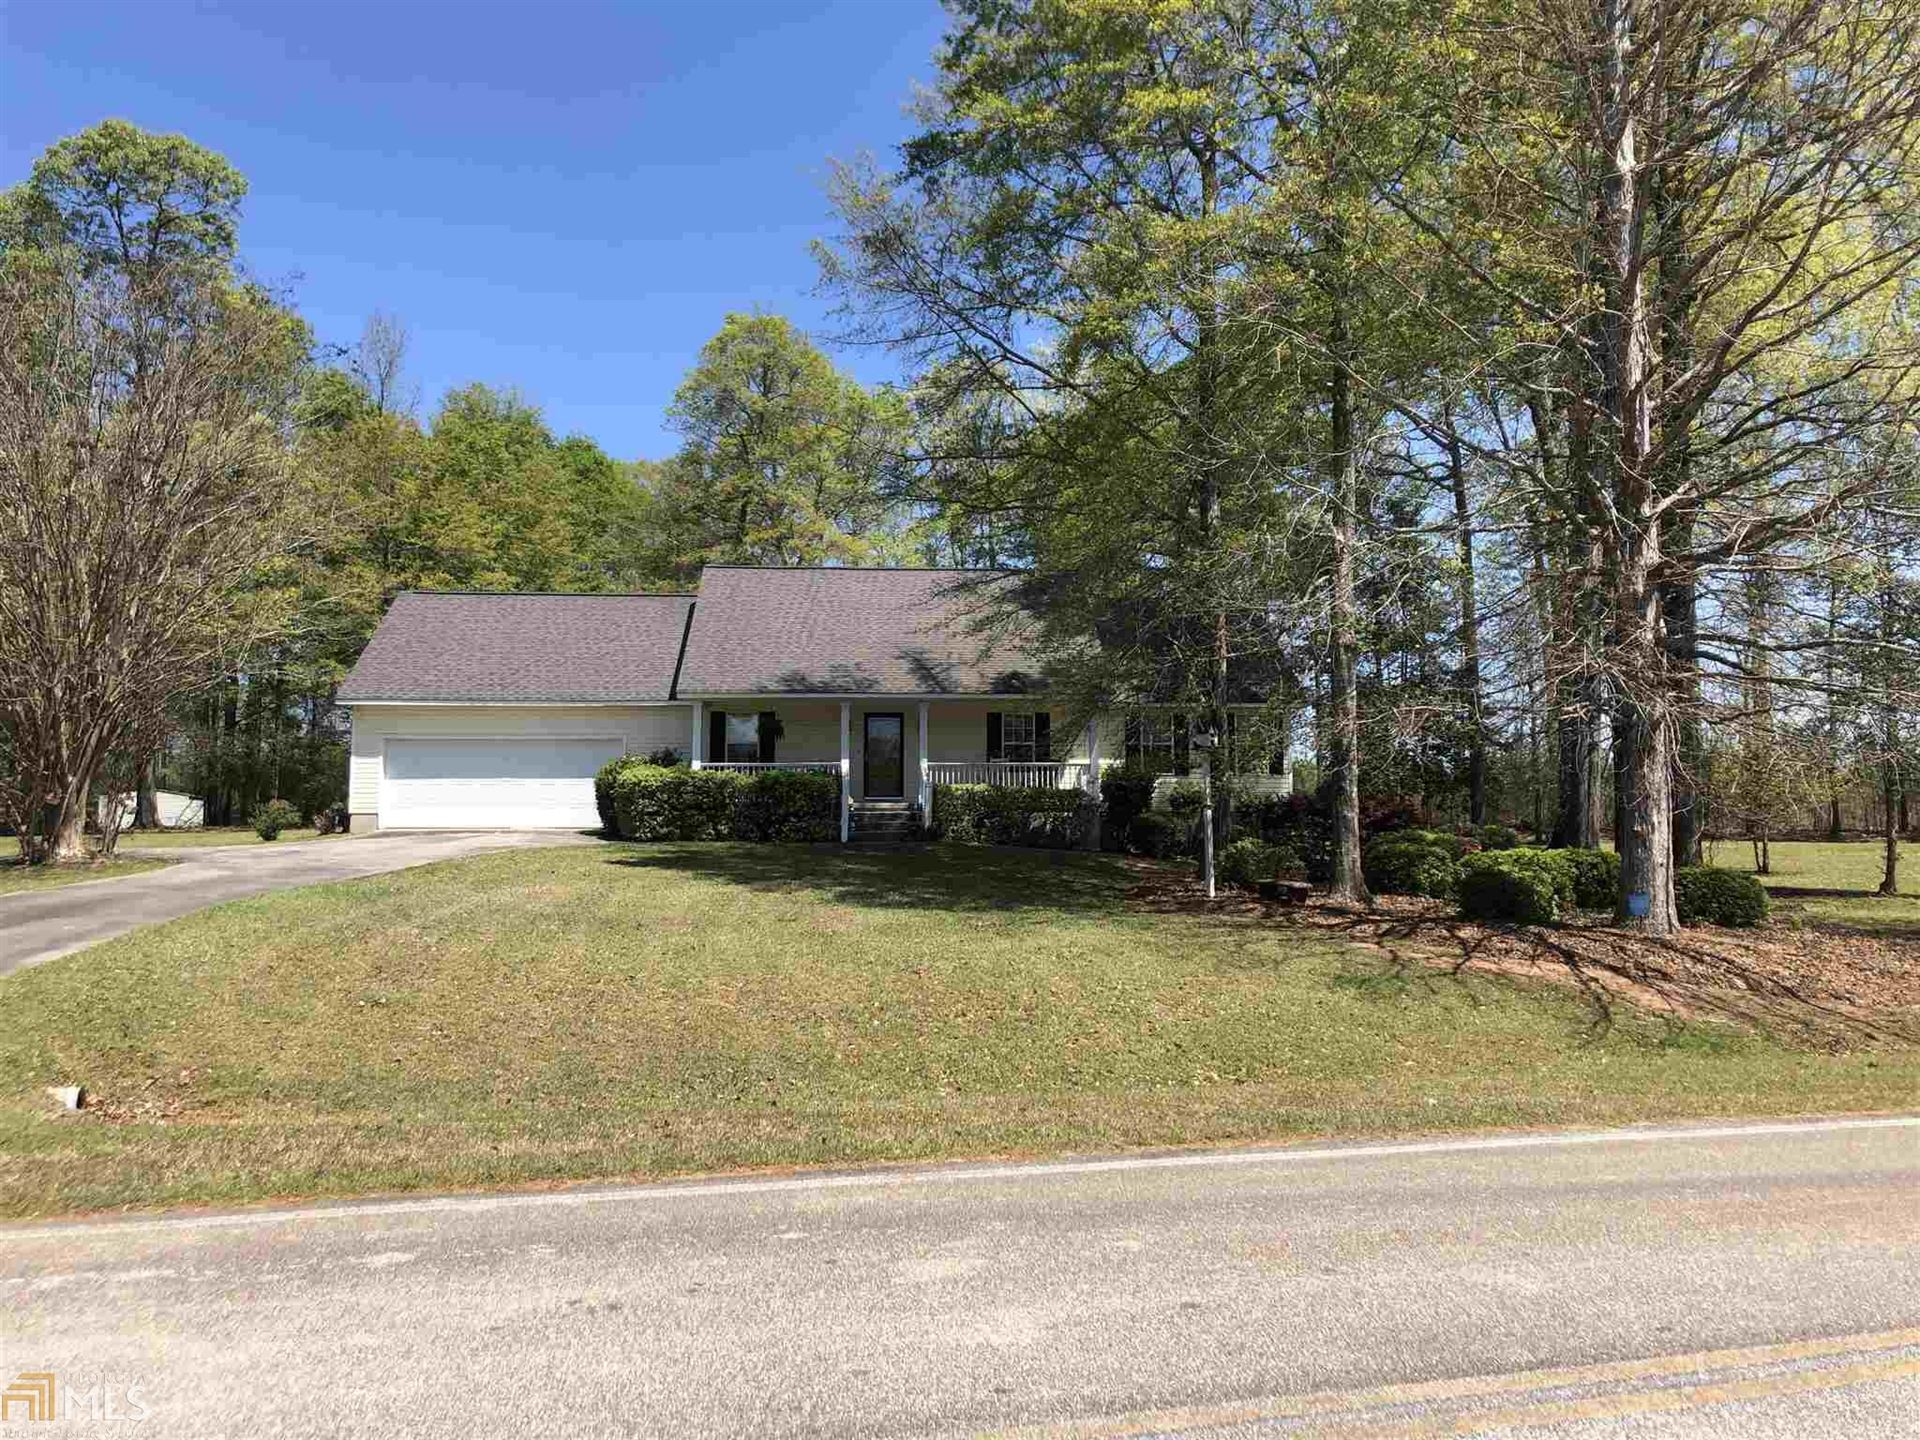 120 Scarlett Way, Milledgeville, GA 31061 - MLS#: 8955789